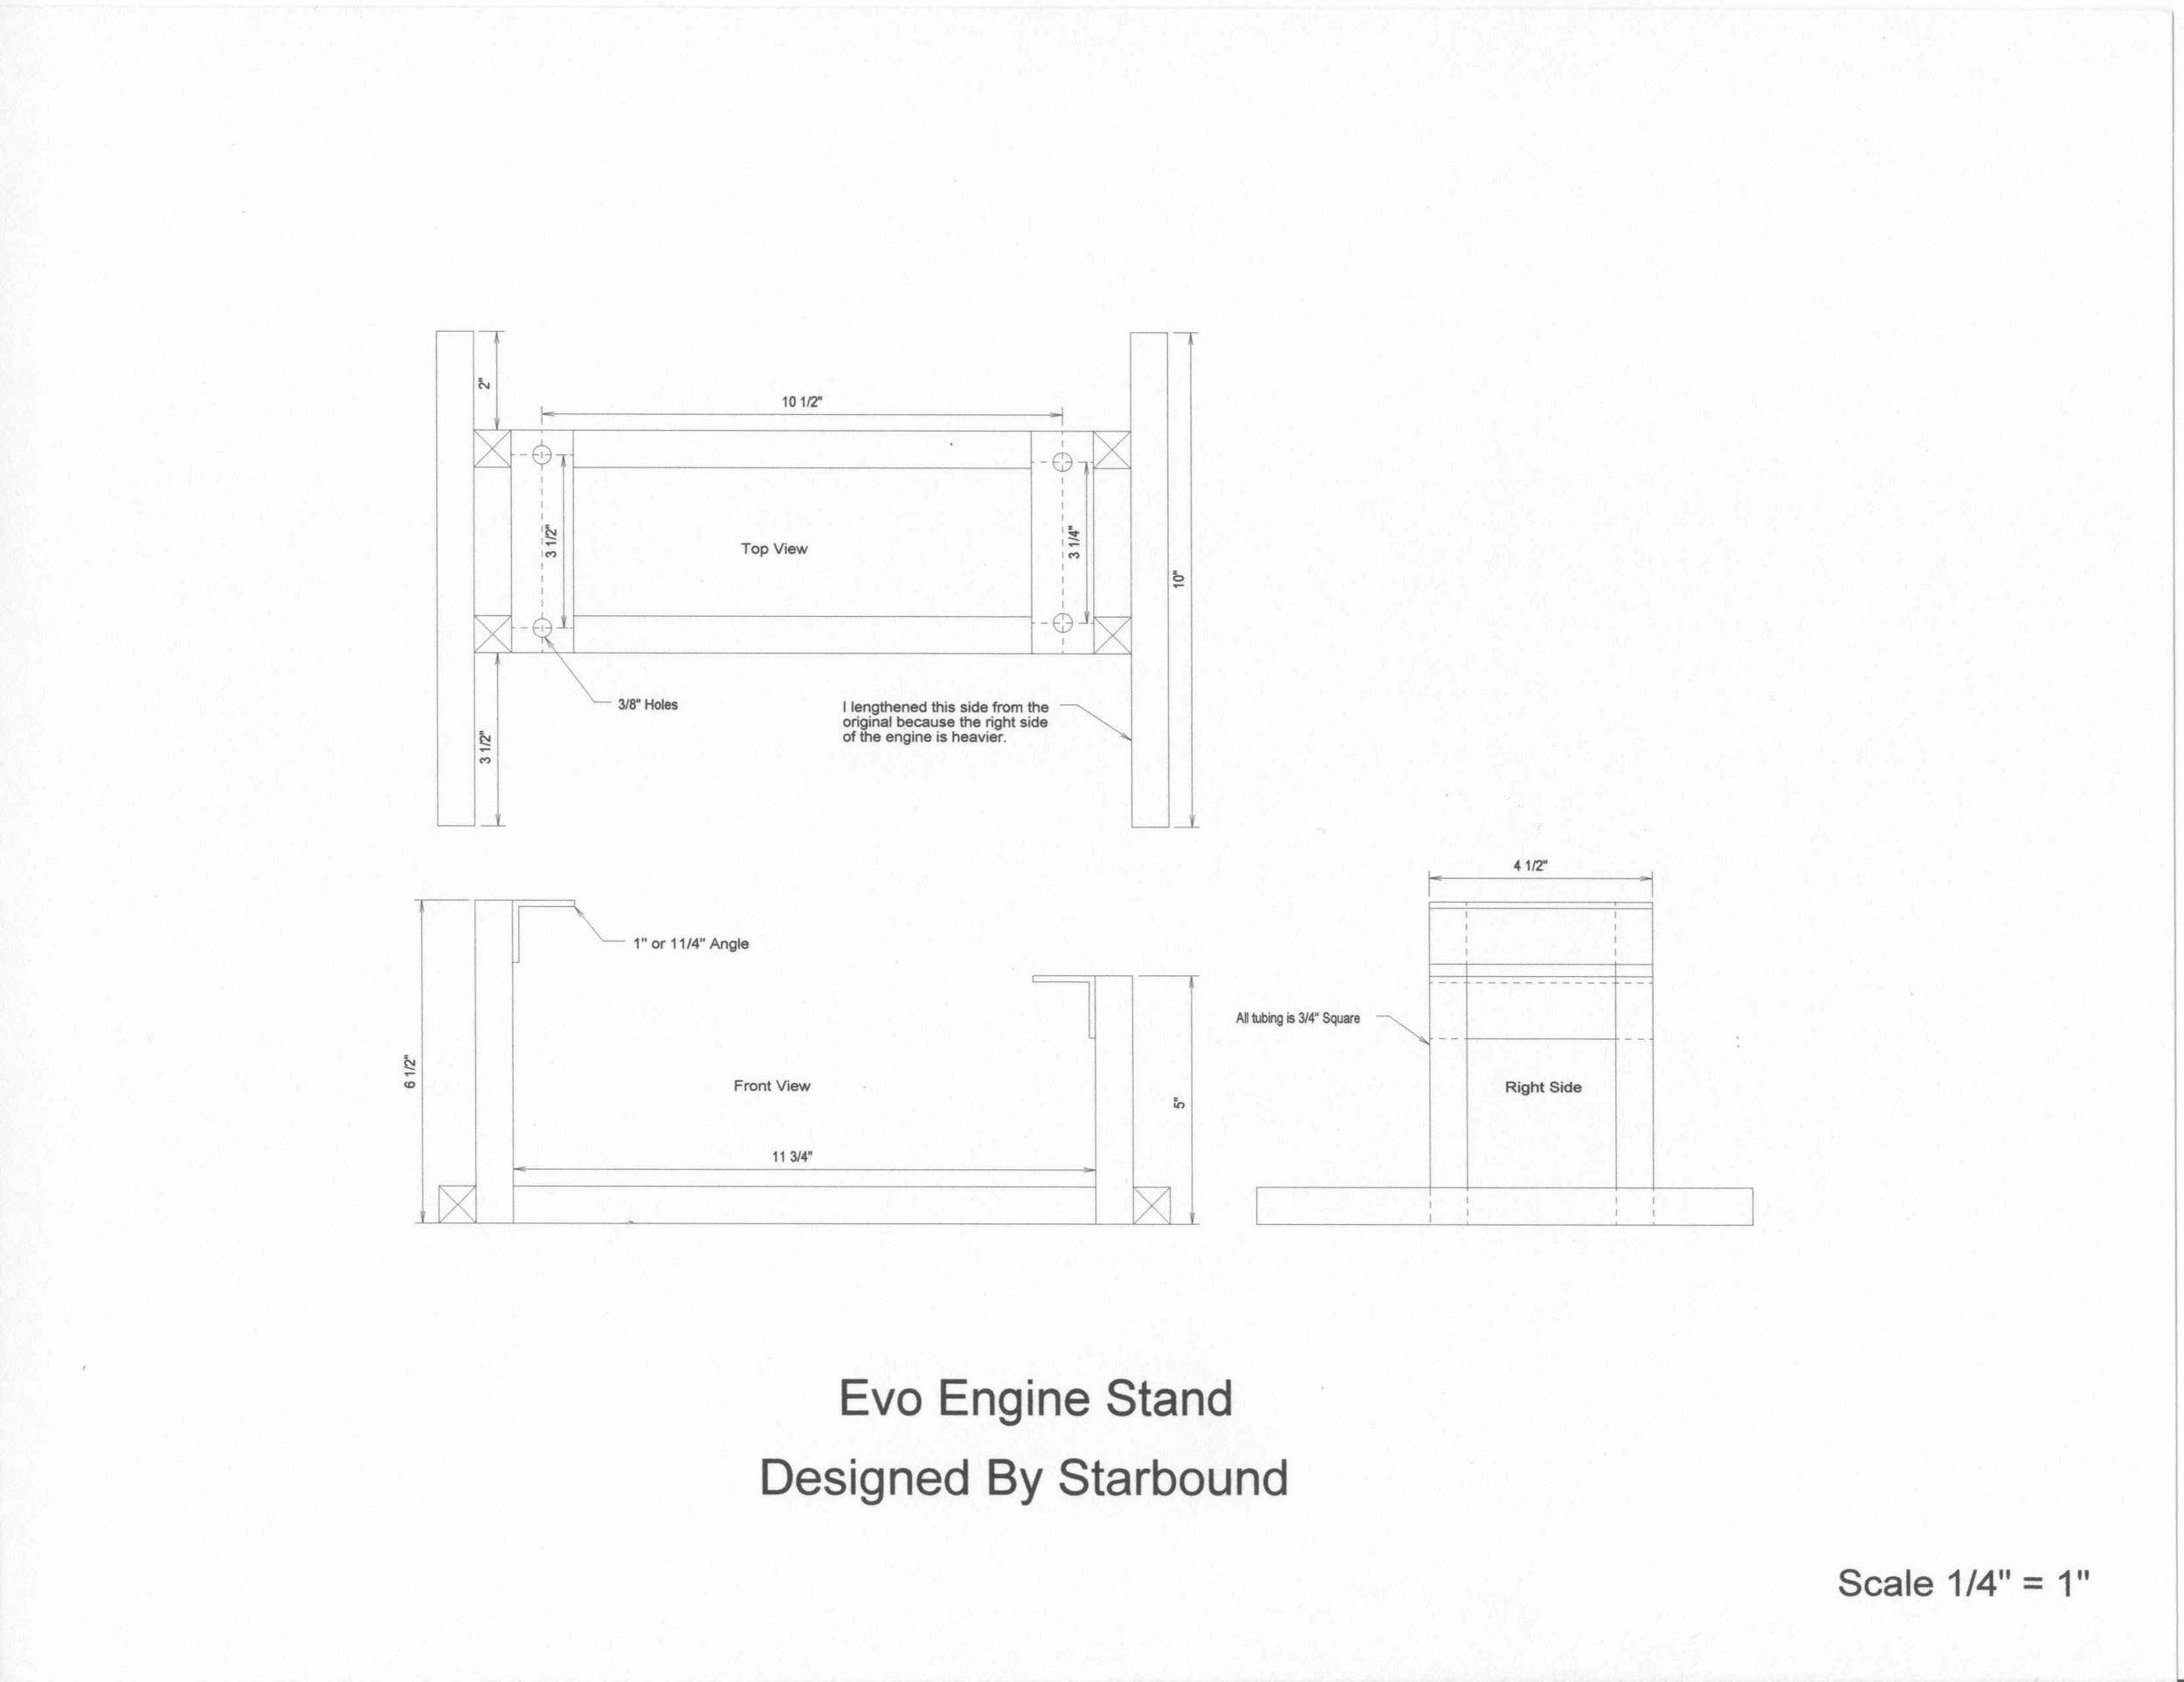 Engine Stand Diagram Opinions About Wiring Compression Test Plans For A Harley Motor Mustaribrand Rh Com